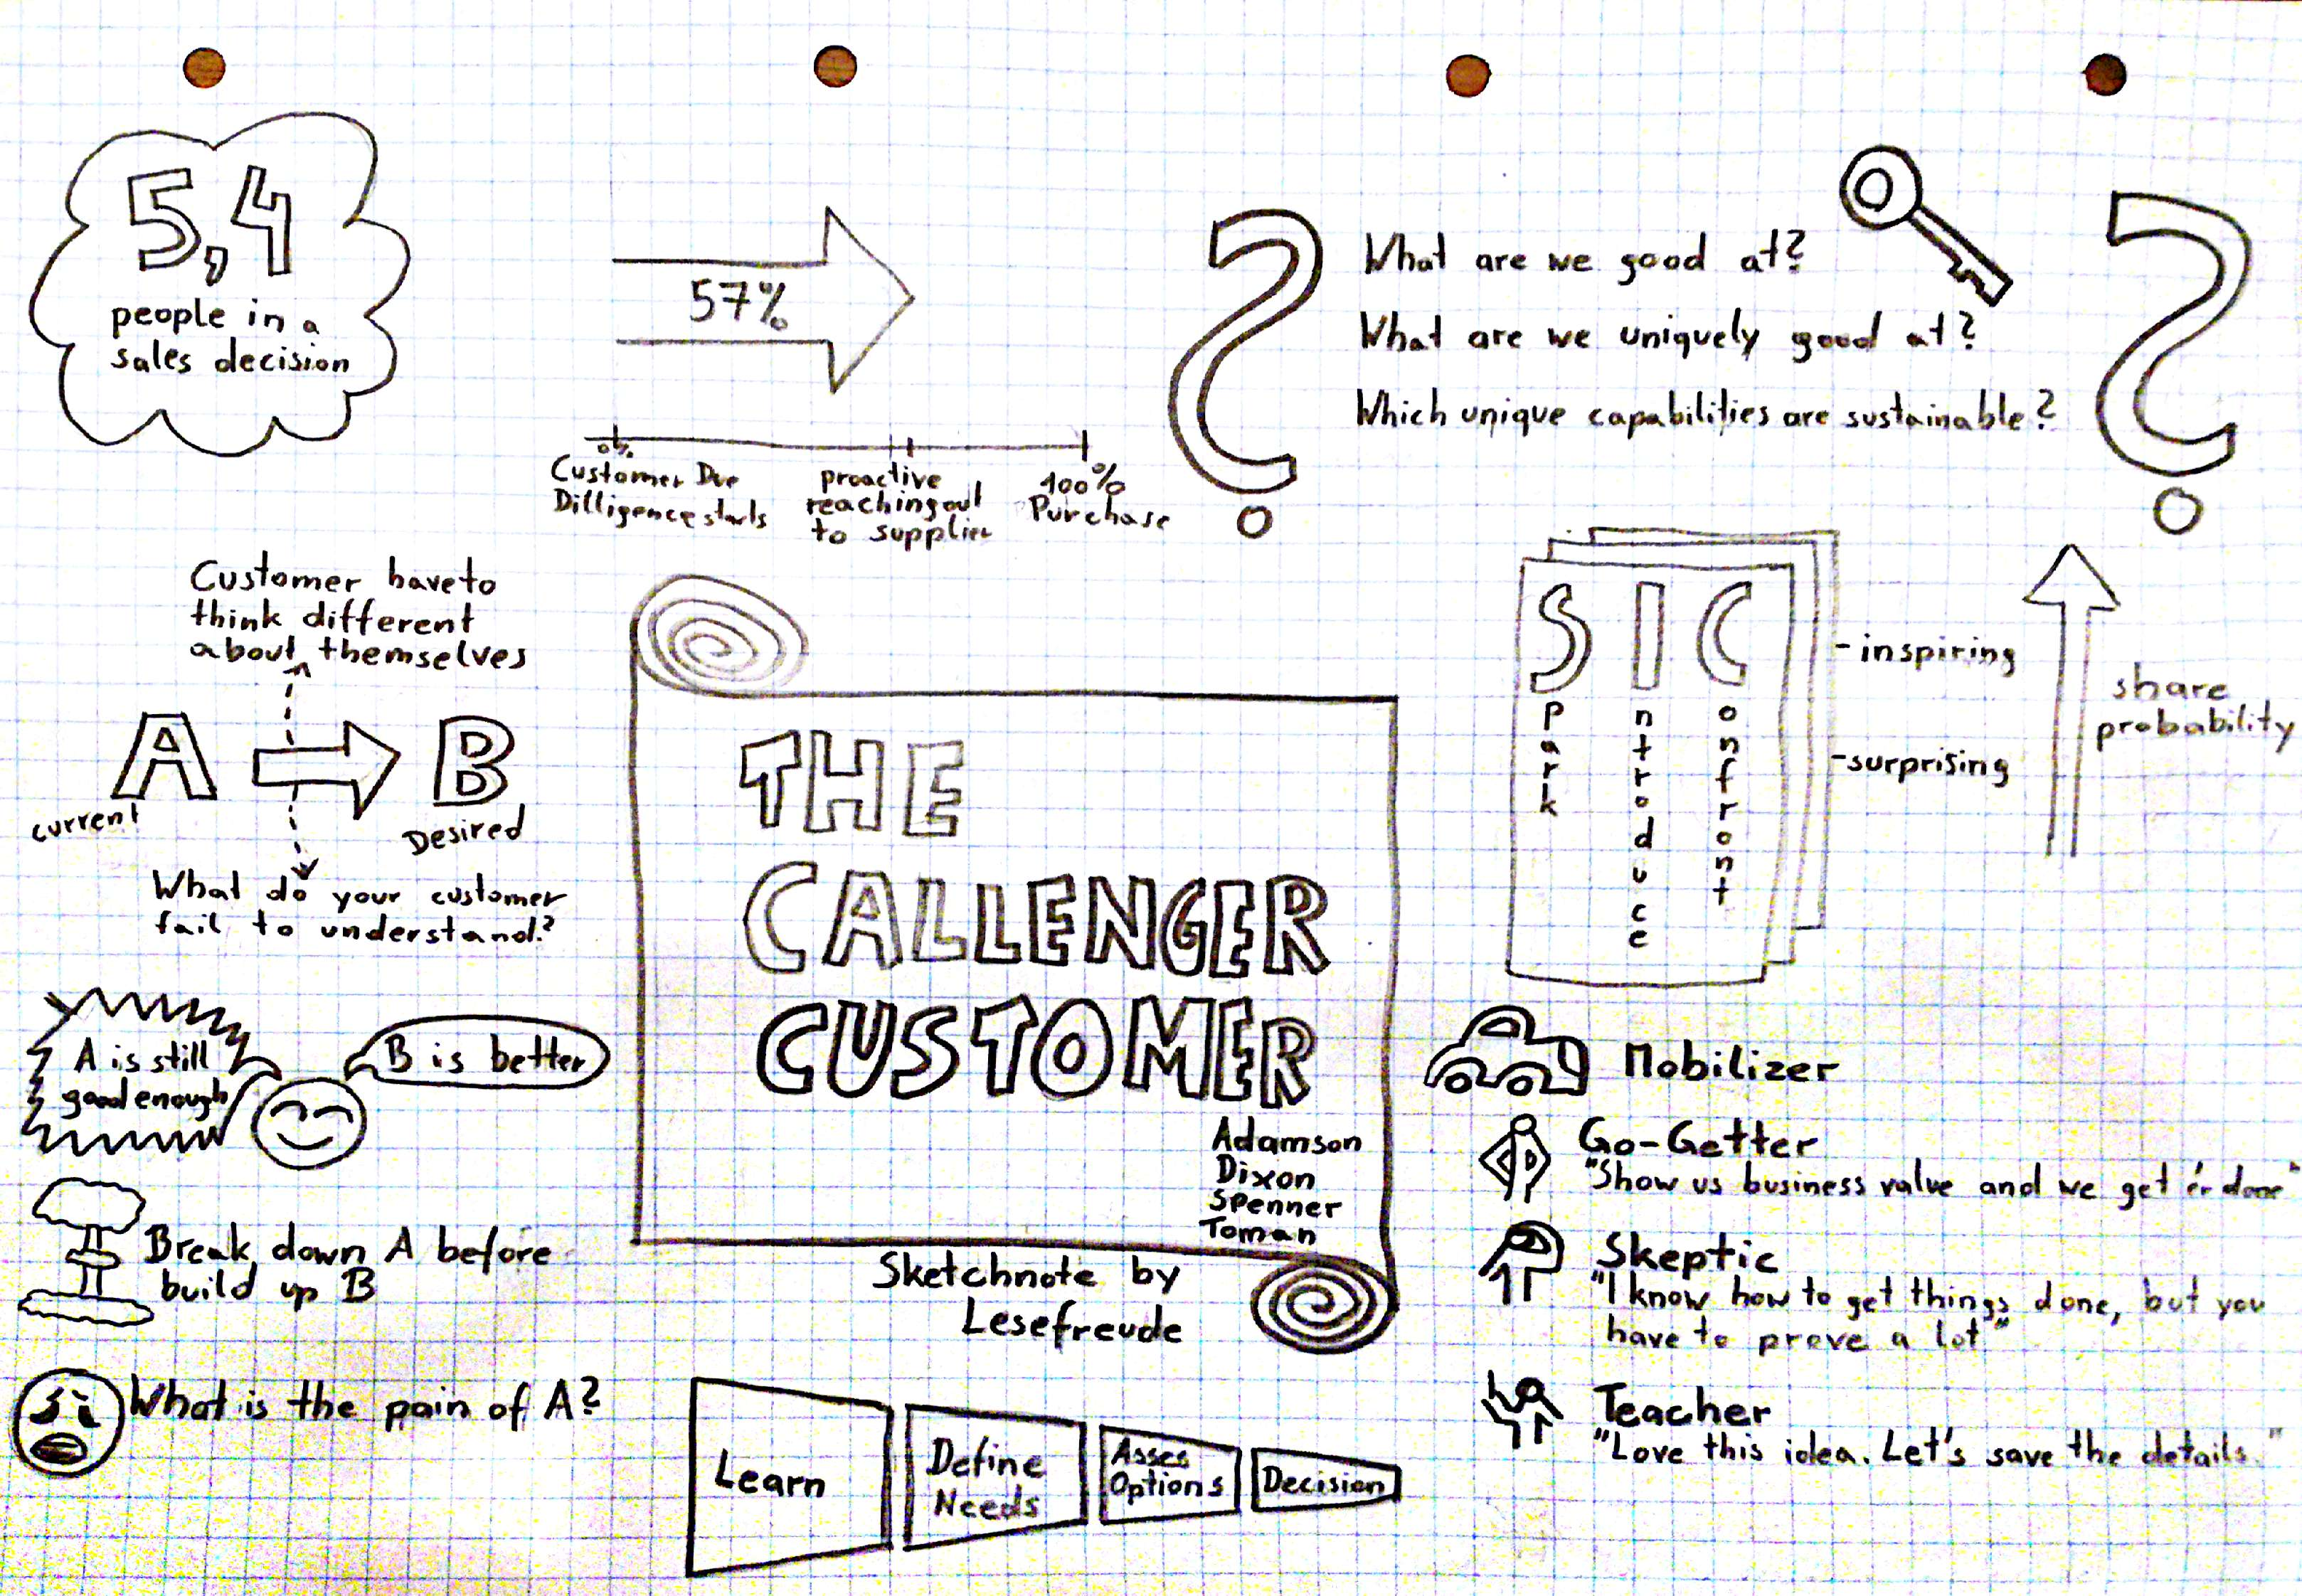 Sketchnote - The Challenger Customer